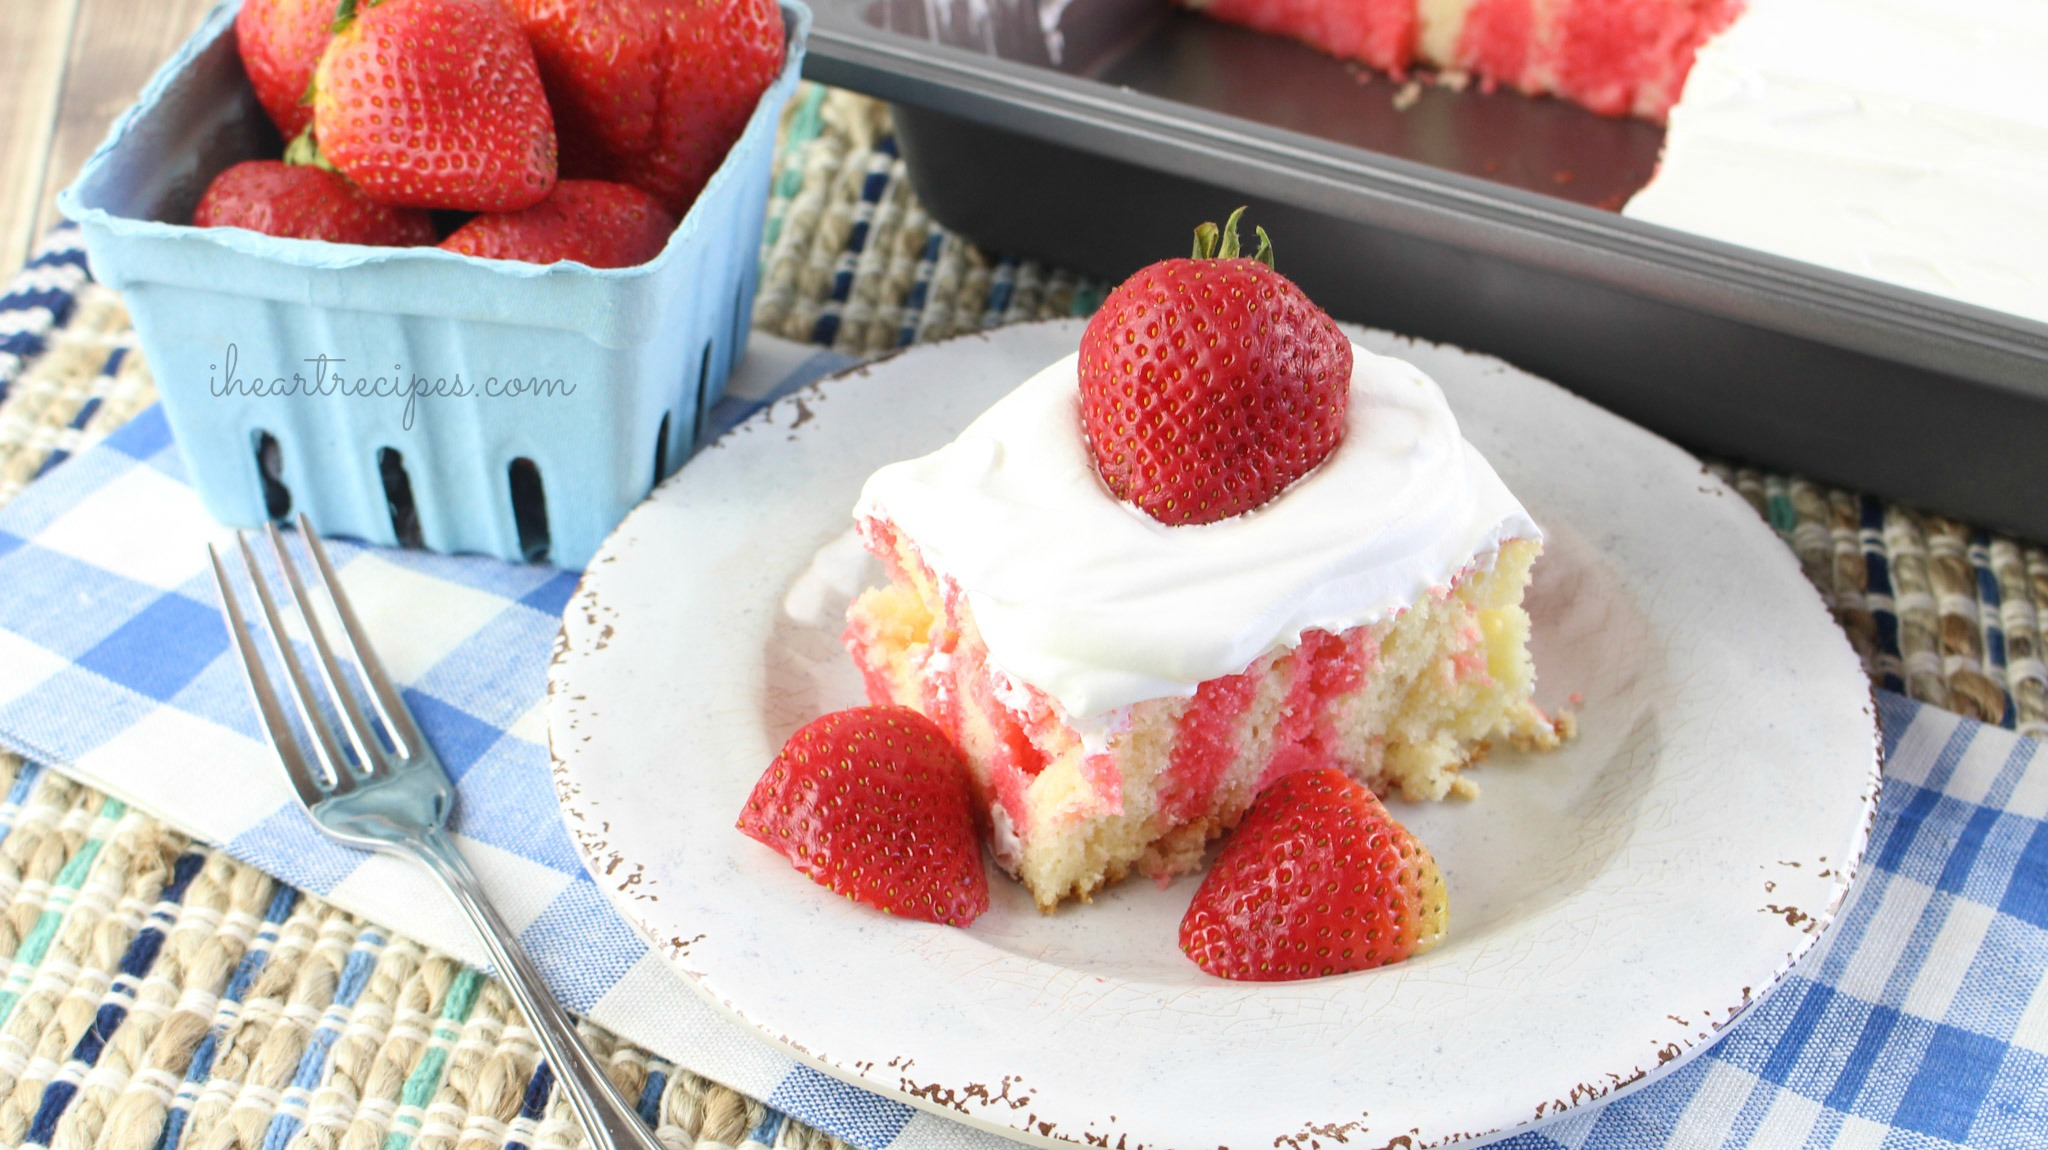 This sweet summer strawberry poke cake is made with fresh strawberries and sweet whipped cream